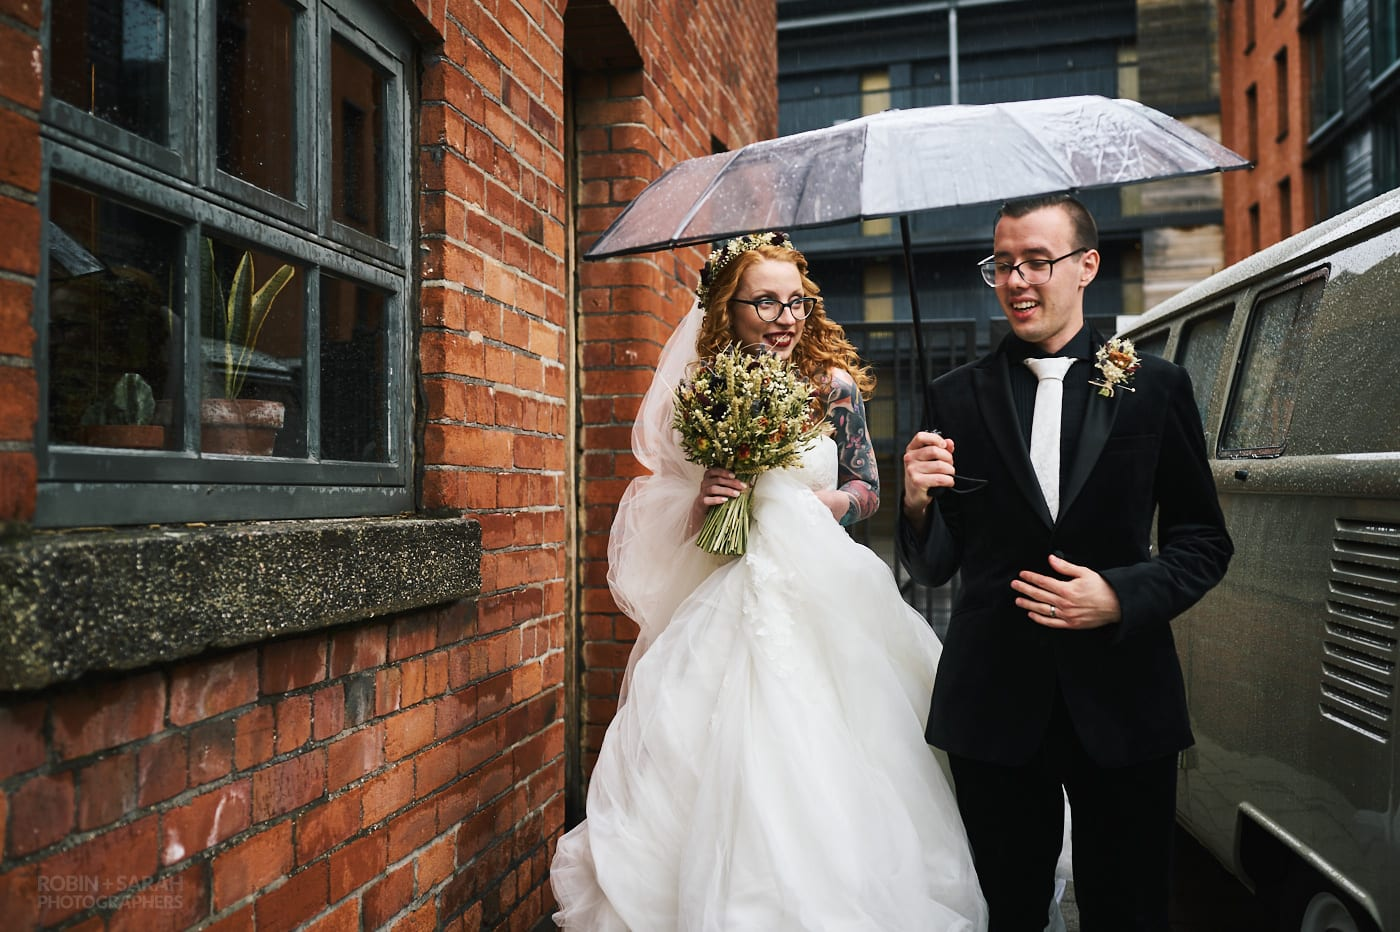 Newly married couple leave The Chimney House wedding venue